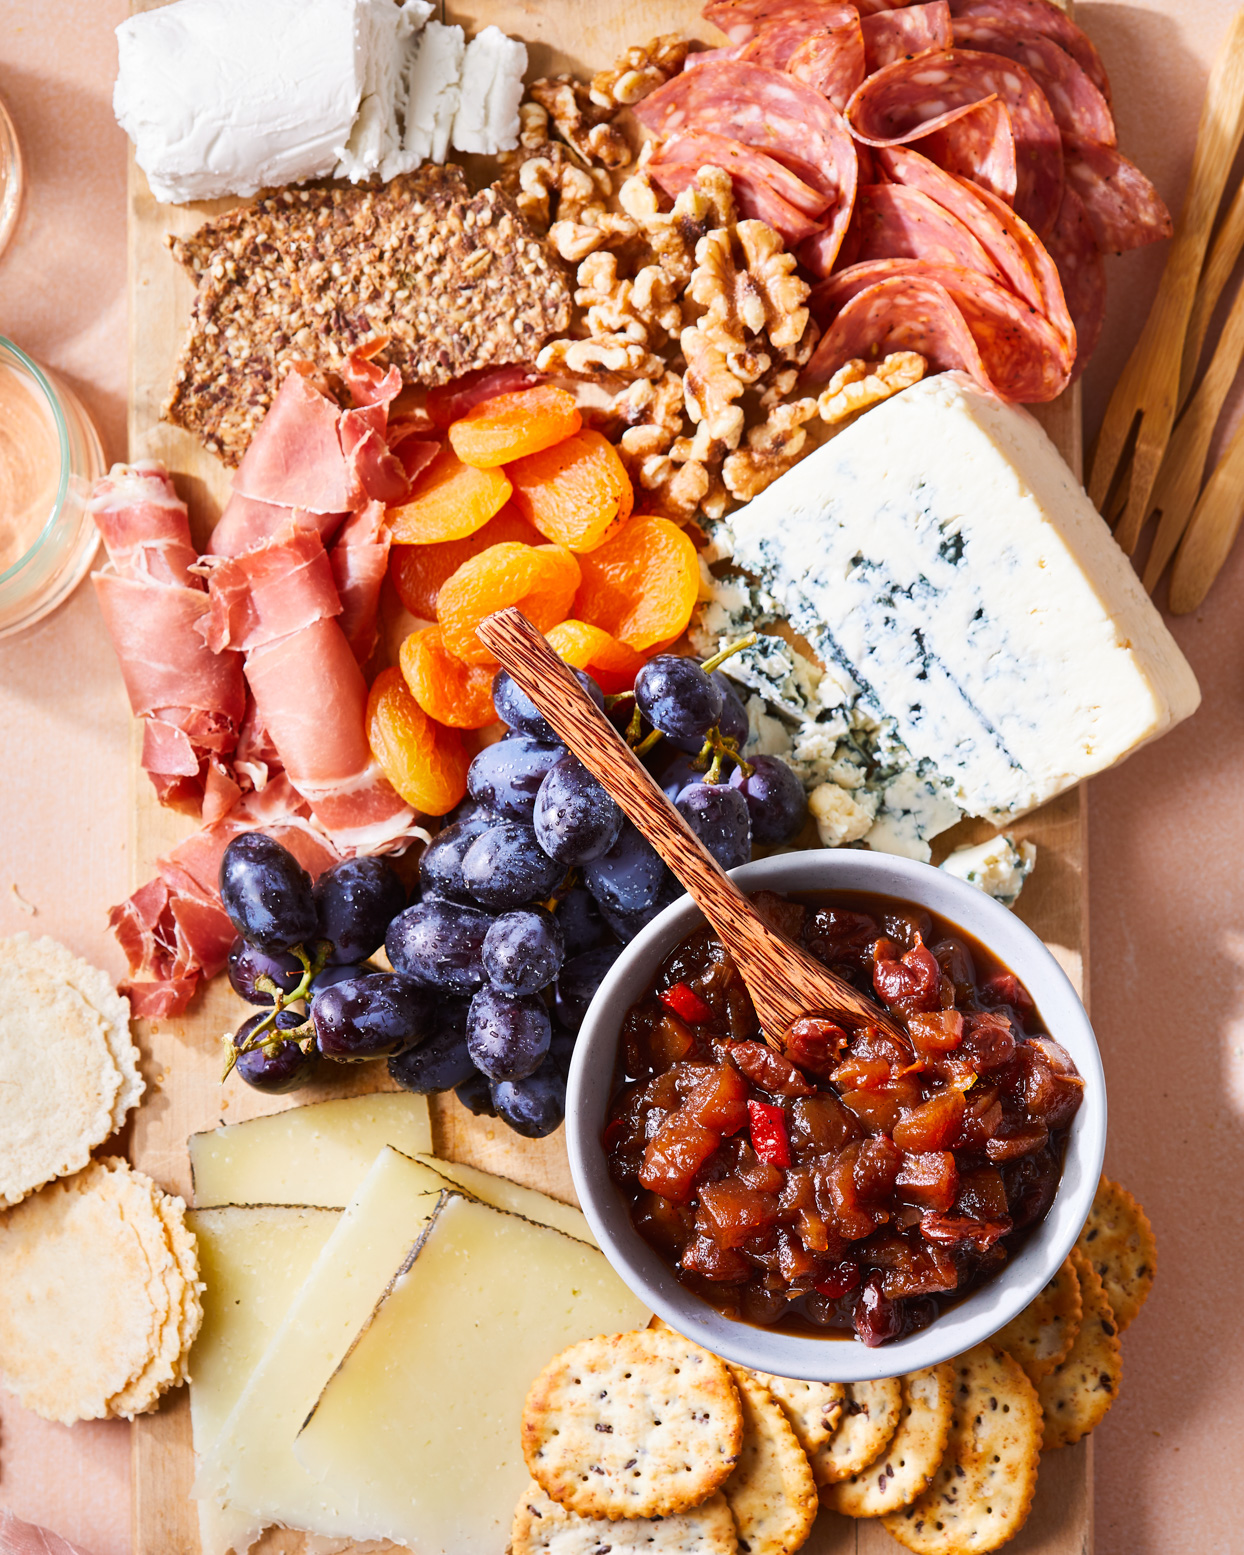 Apple-Cherry Chutney on charcuterie board with crackers, cheese fruit, and cured meats